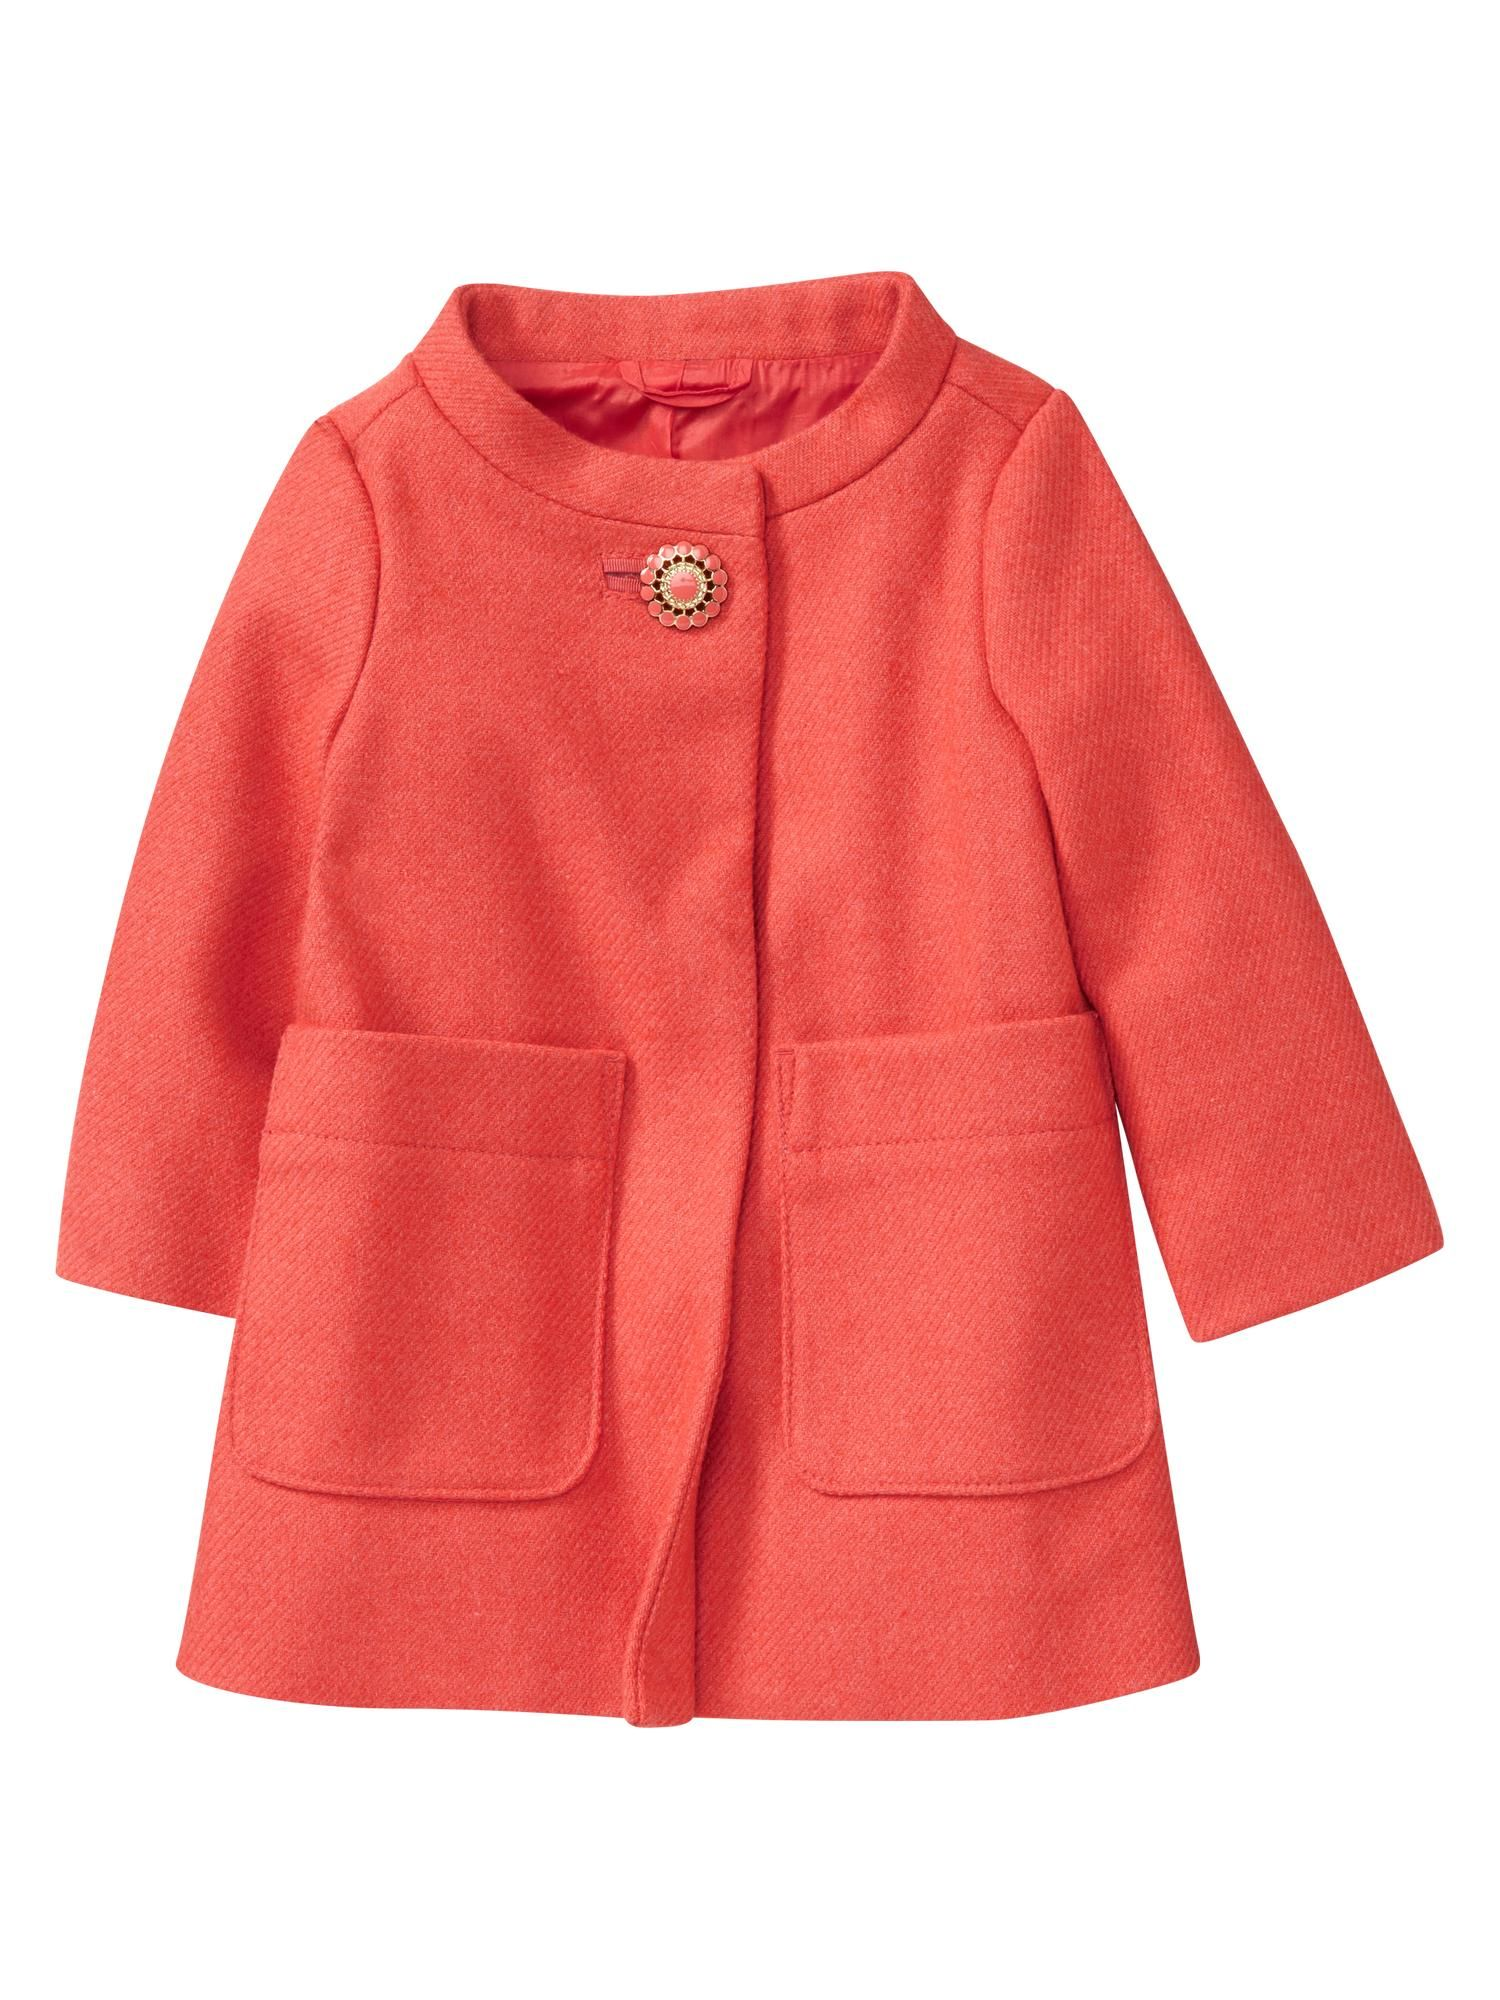 Baby Gap Coral Coat Kids Outfits Kids Fashion Little